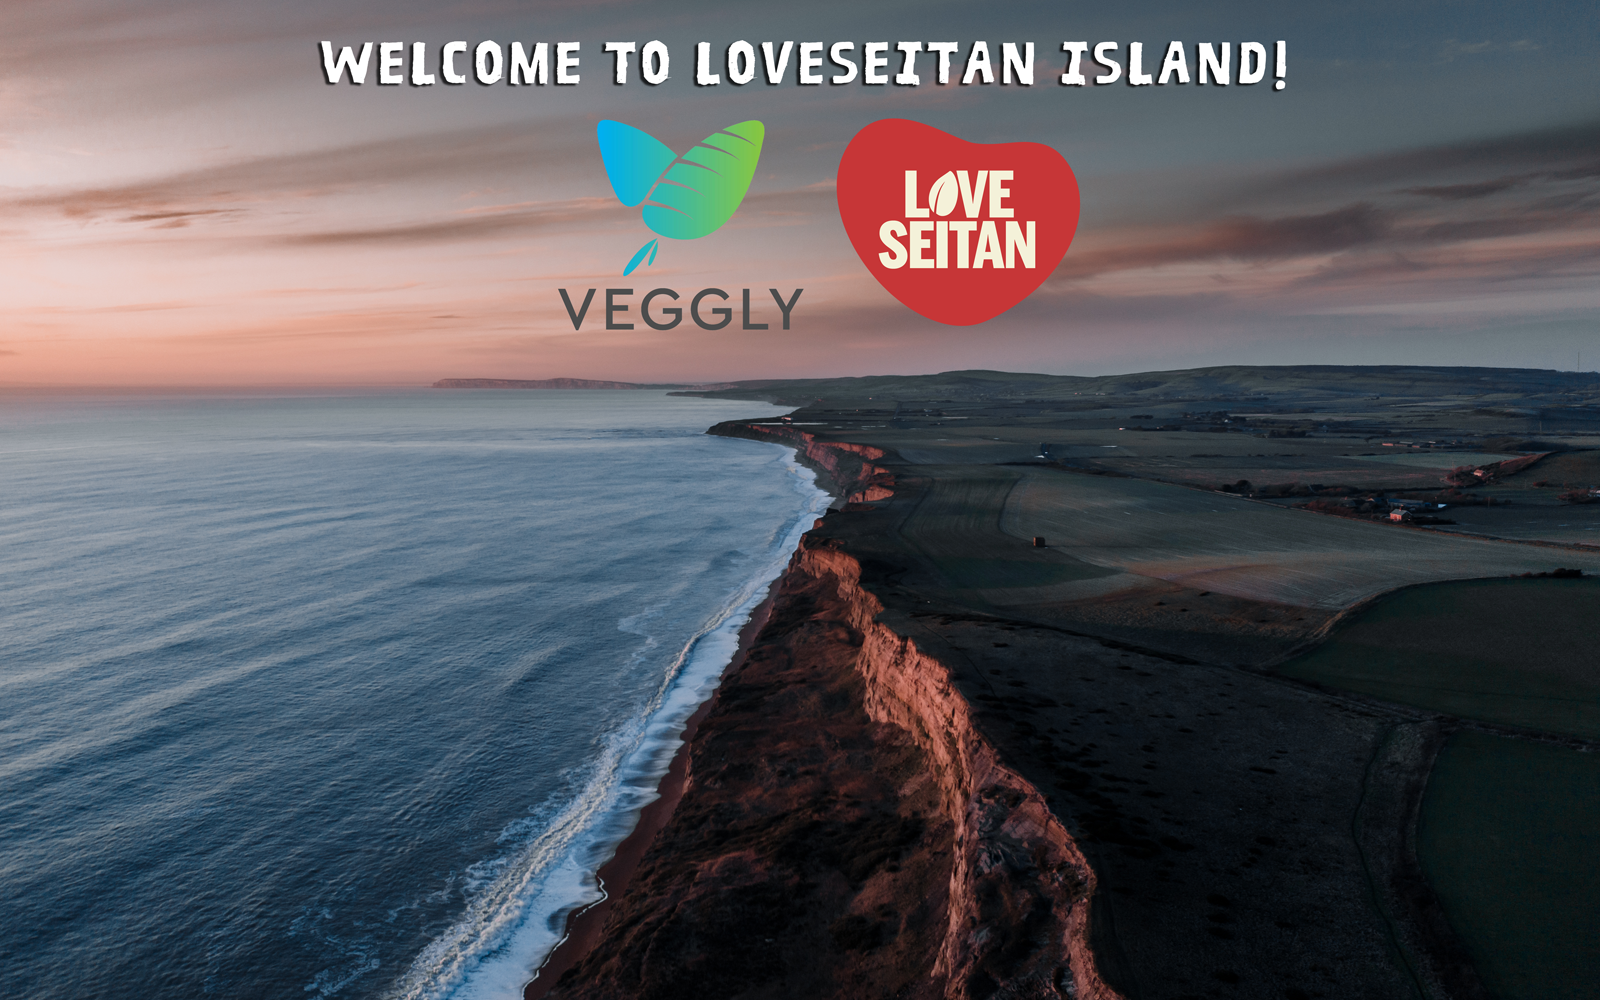 WELCOME TO LOVESEITAN ISLAND!